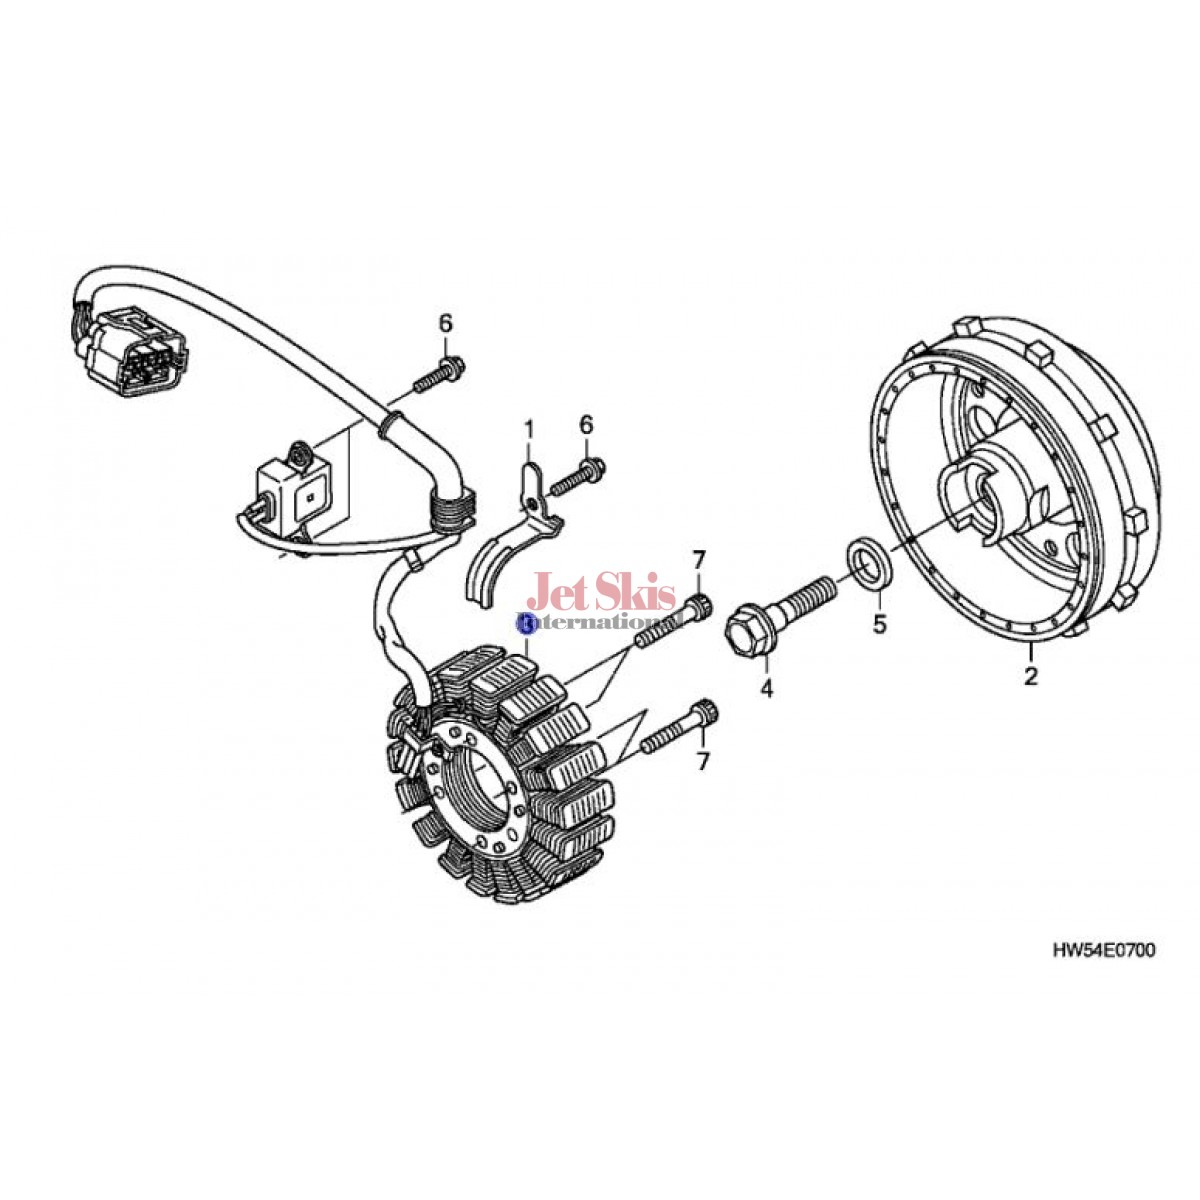 HONDA AQUATRAX 31120-HW5-901 STATOR/PULSE GENERATOR FOR